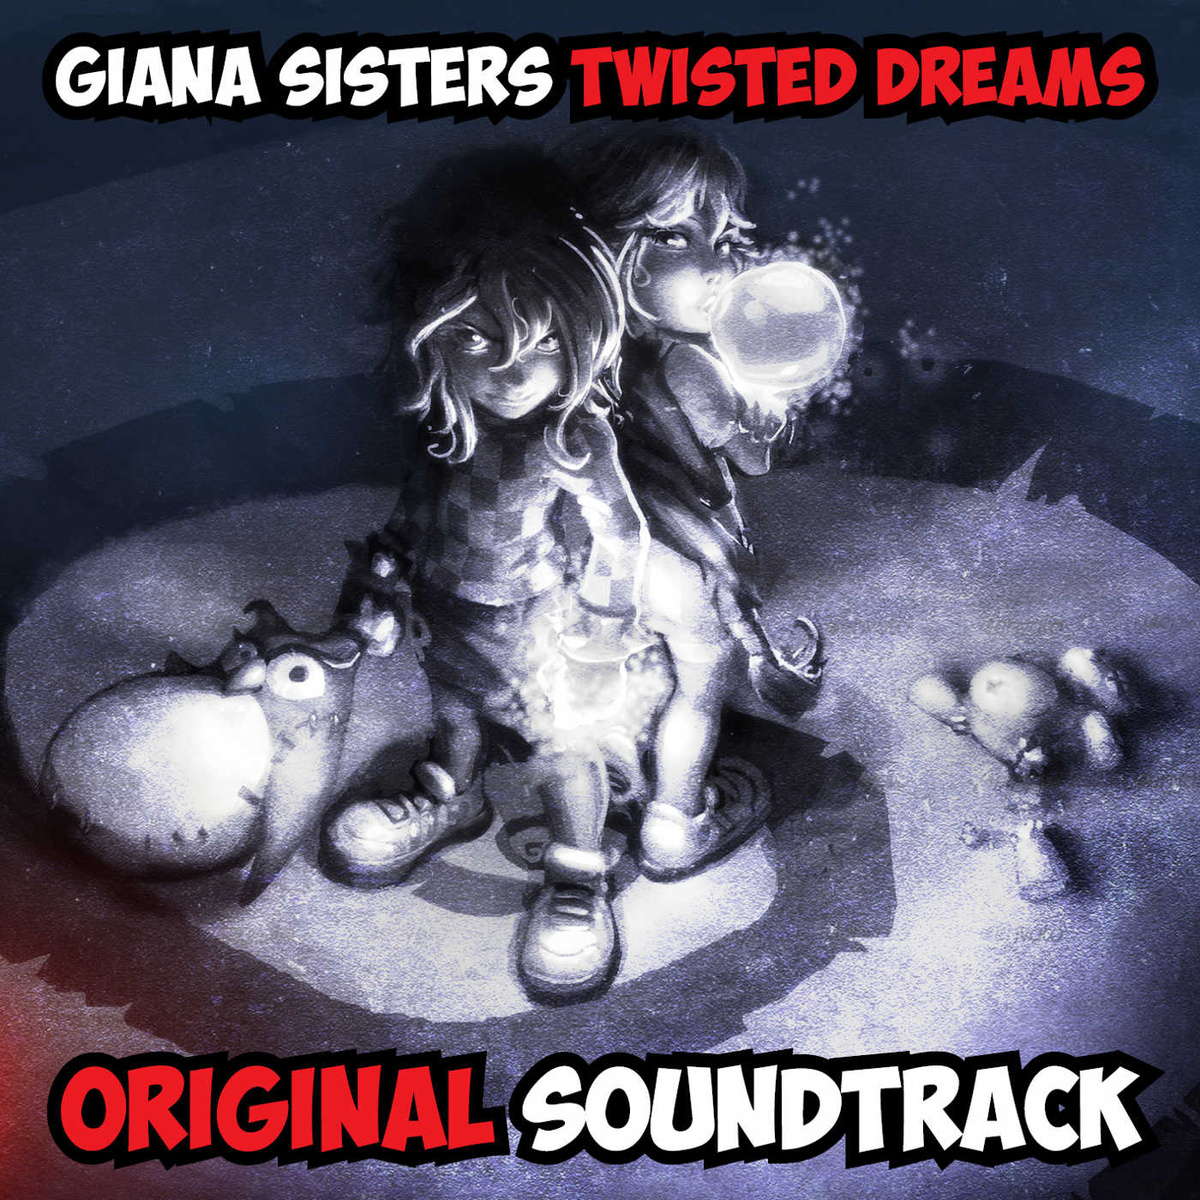 Giana_Sisters_Twisted_Dreams_Original_Soundtrack__cover1200x1200.jpg